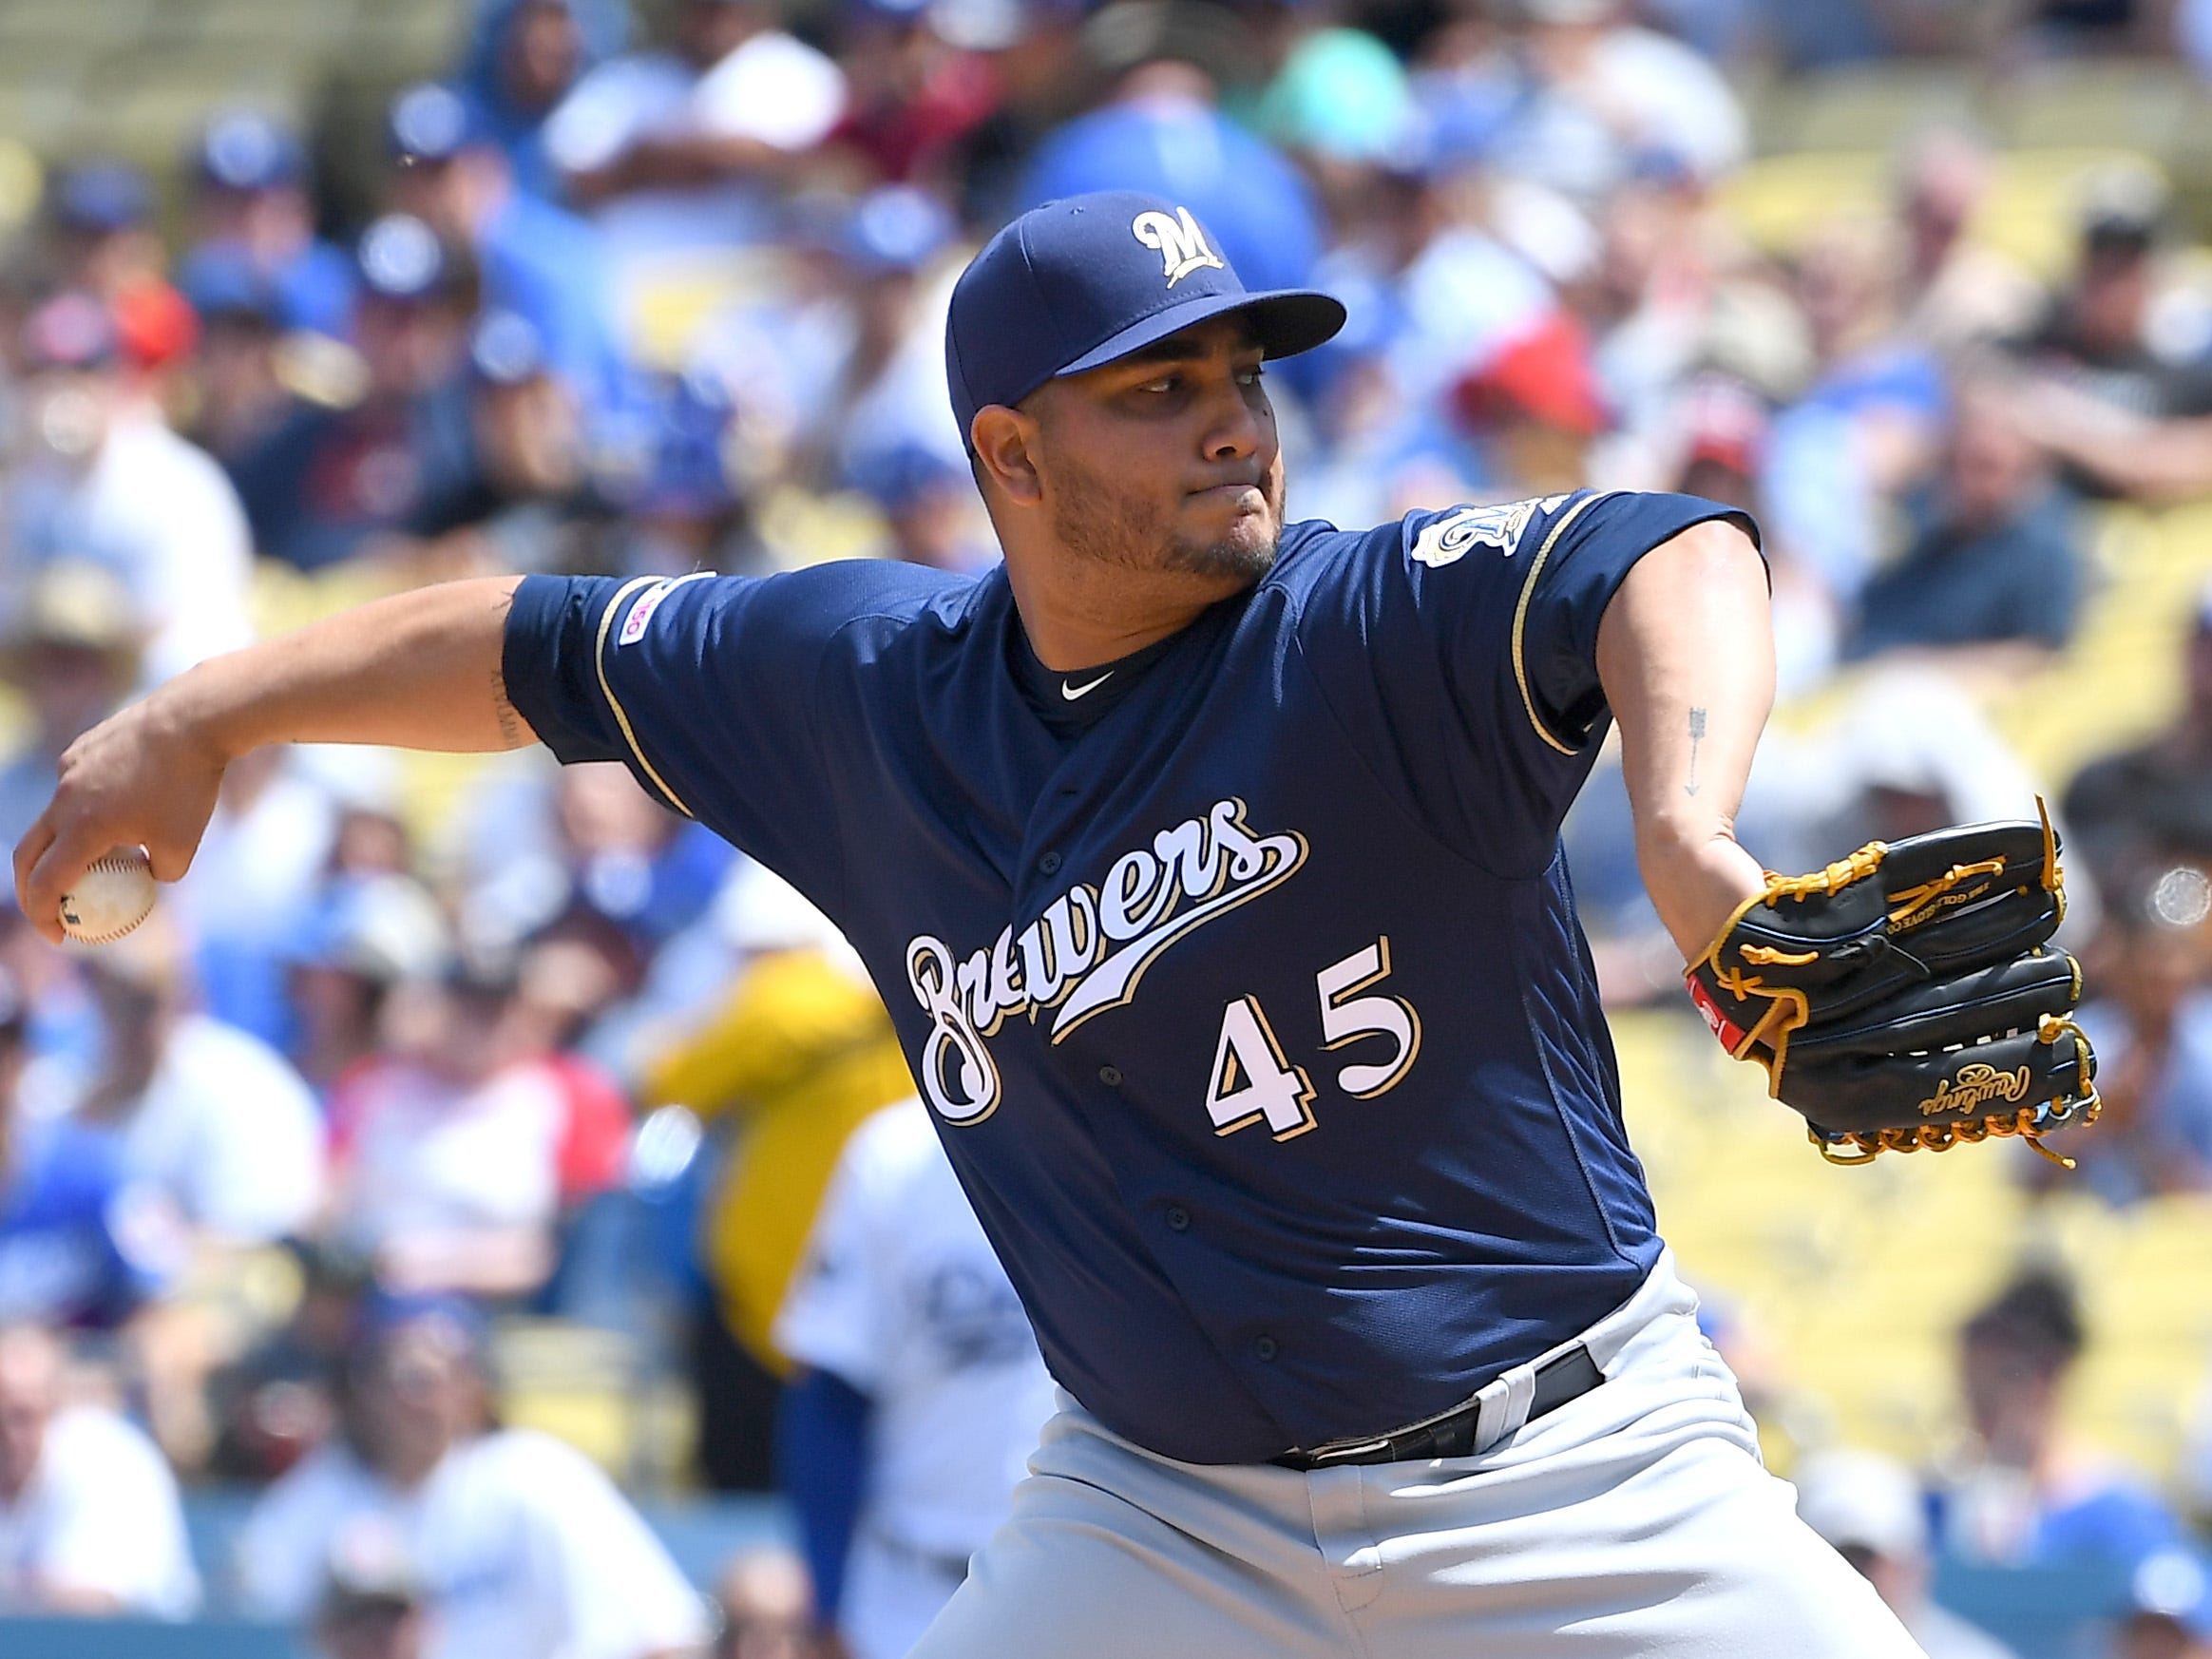 Jhoulys Chacín lasted only 2 1/3 innings Sunday.